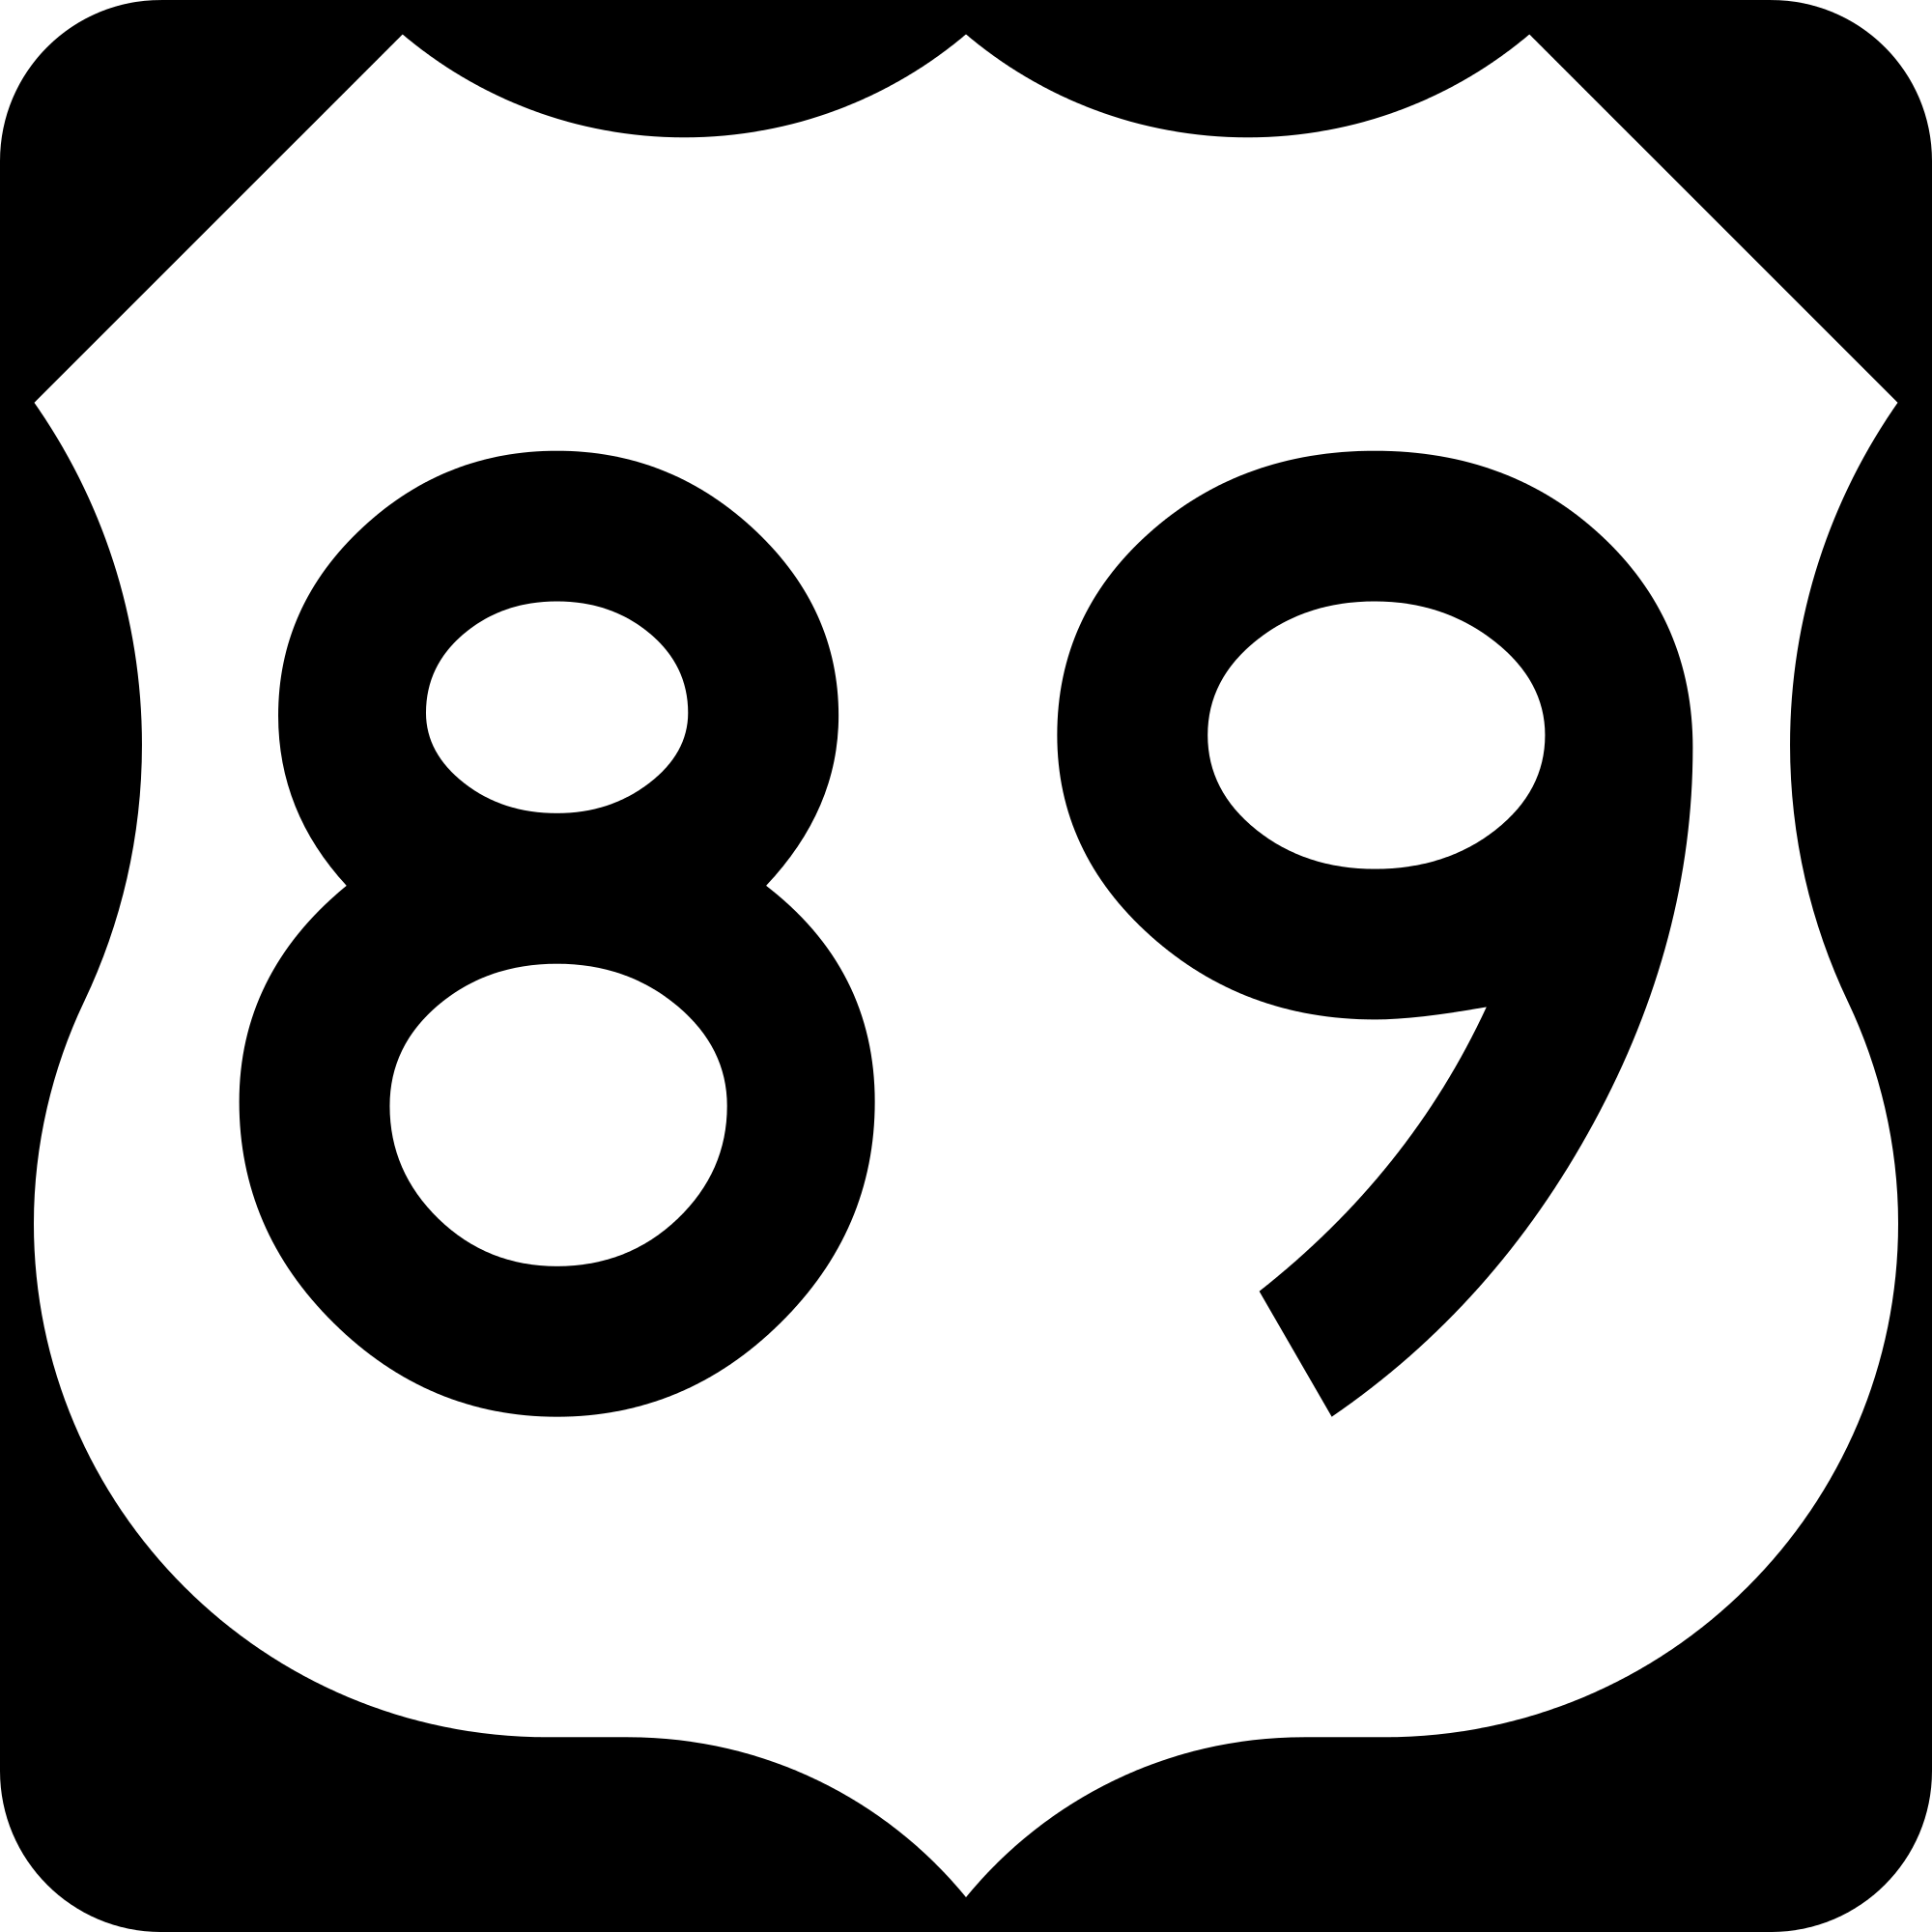 File:US 89.svg.